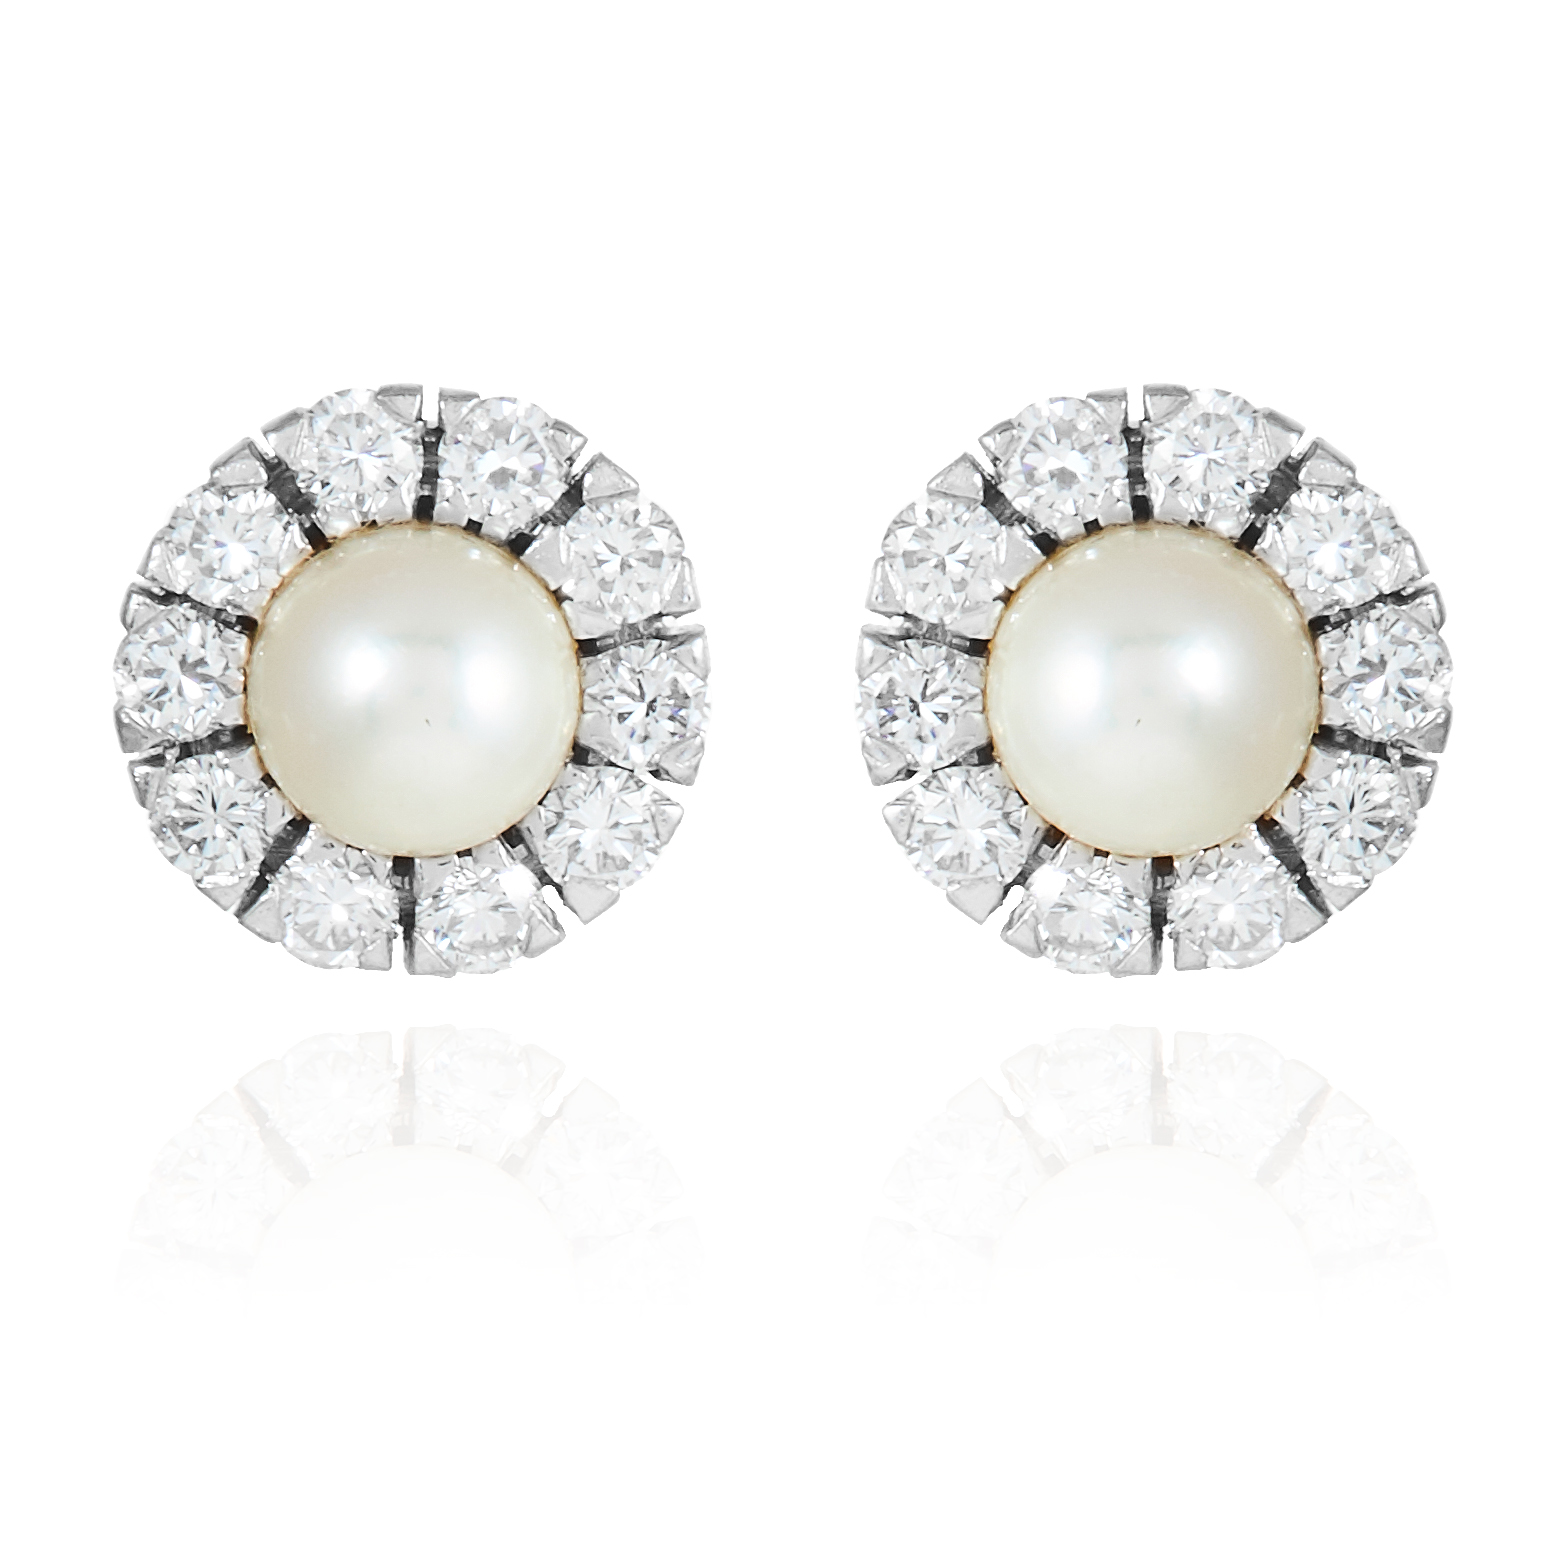 A PAIR OF DIAMOND AND PEARL STUD EARRINGS in 18 carat white gold, jewelled with round cut diamonds